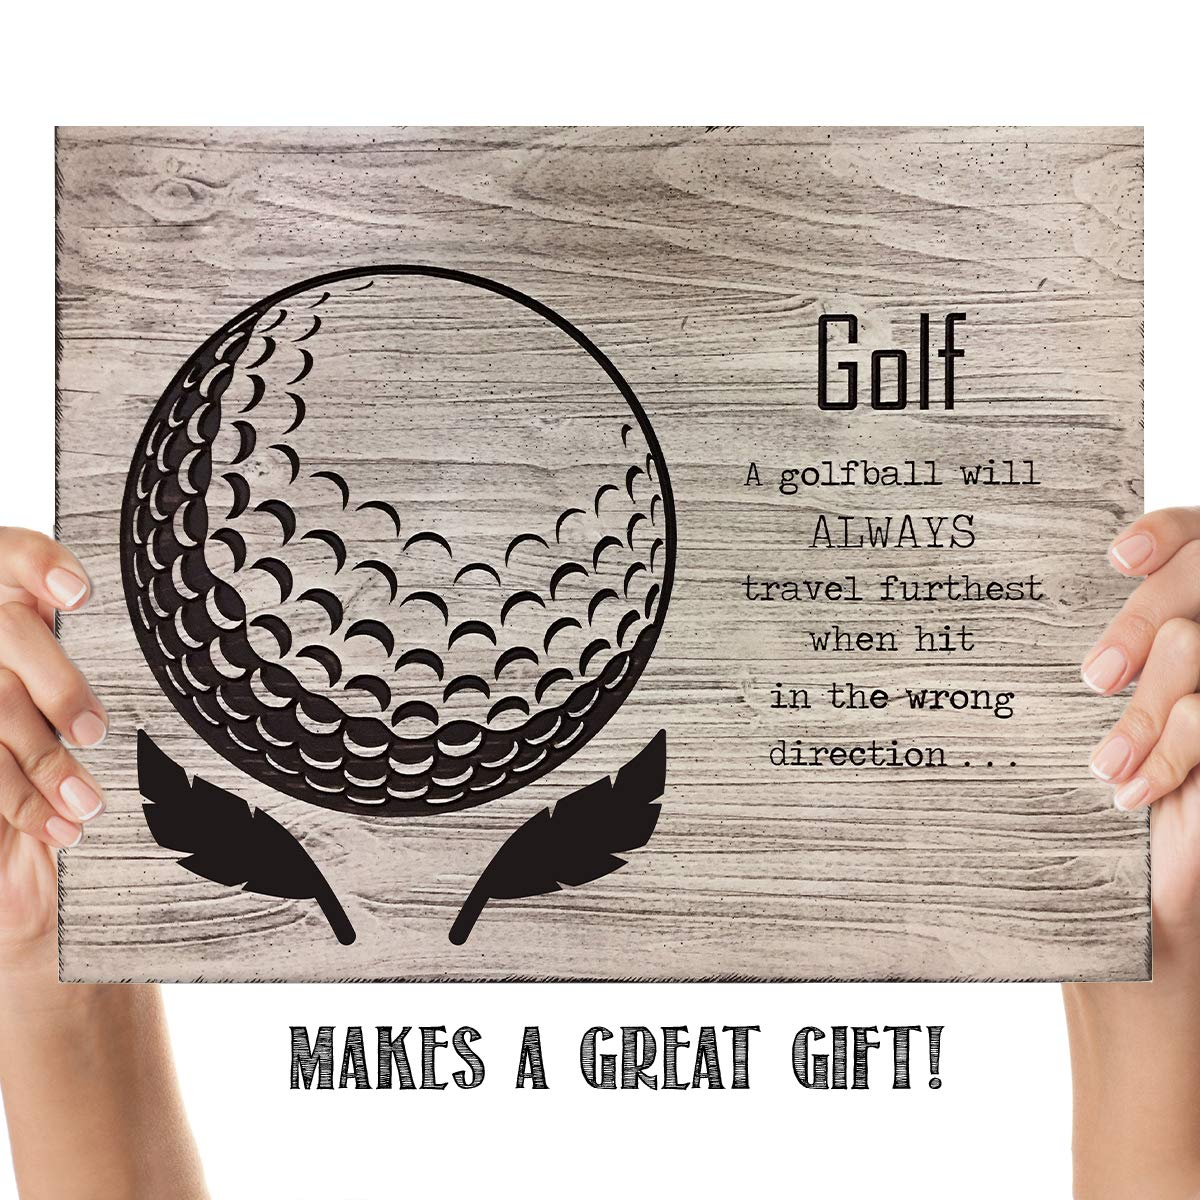 """Golf- Funny Wood Sign Print- 10 x 8""""-""""Golfball Travels Furtherest When Hit Wrong Direction""""- Golf Decor Print-Ready To Frame. Home-Office-Club Decor. Great for Man Cave & 19th Hole. Fun Golf Gift."""